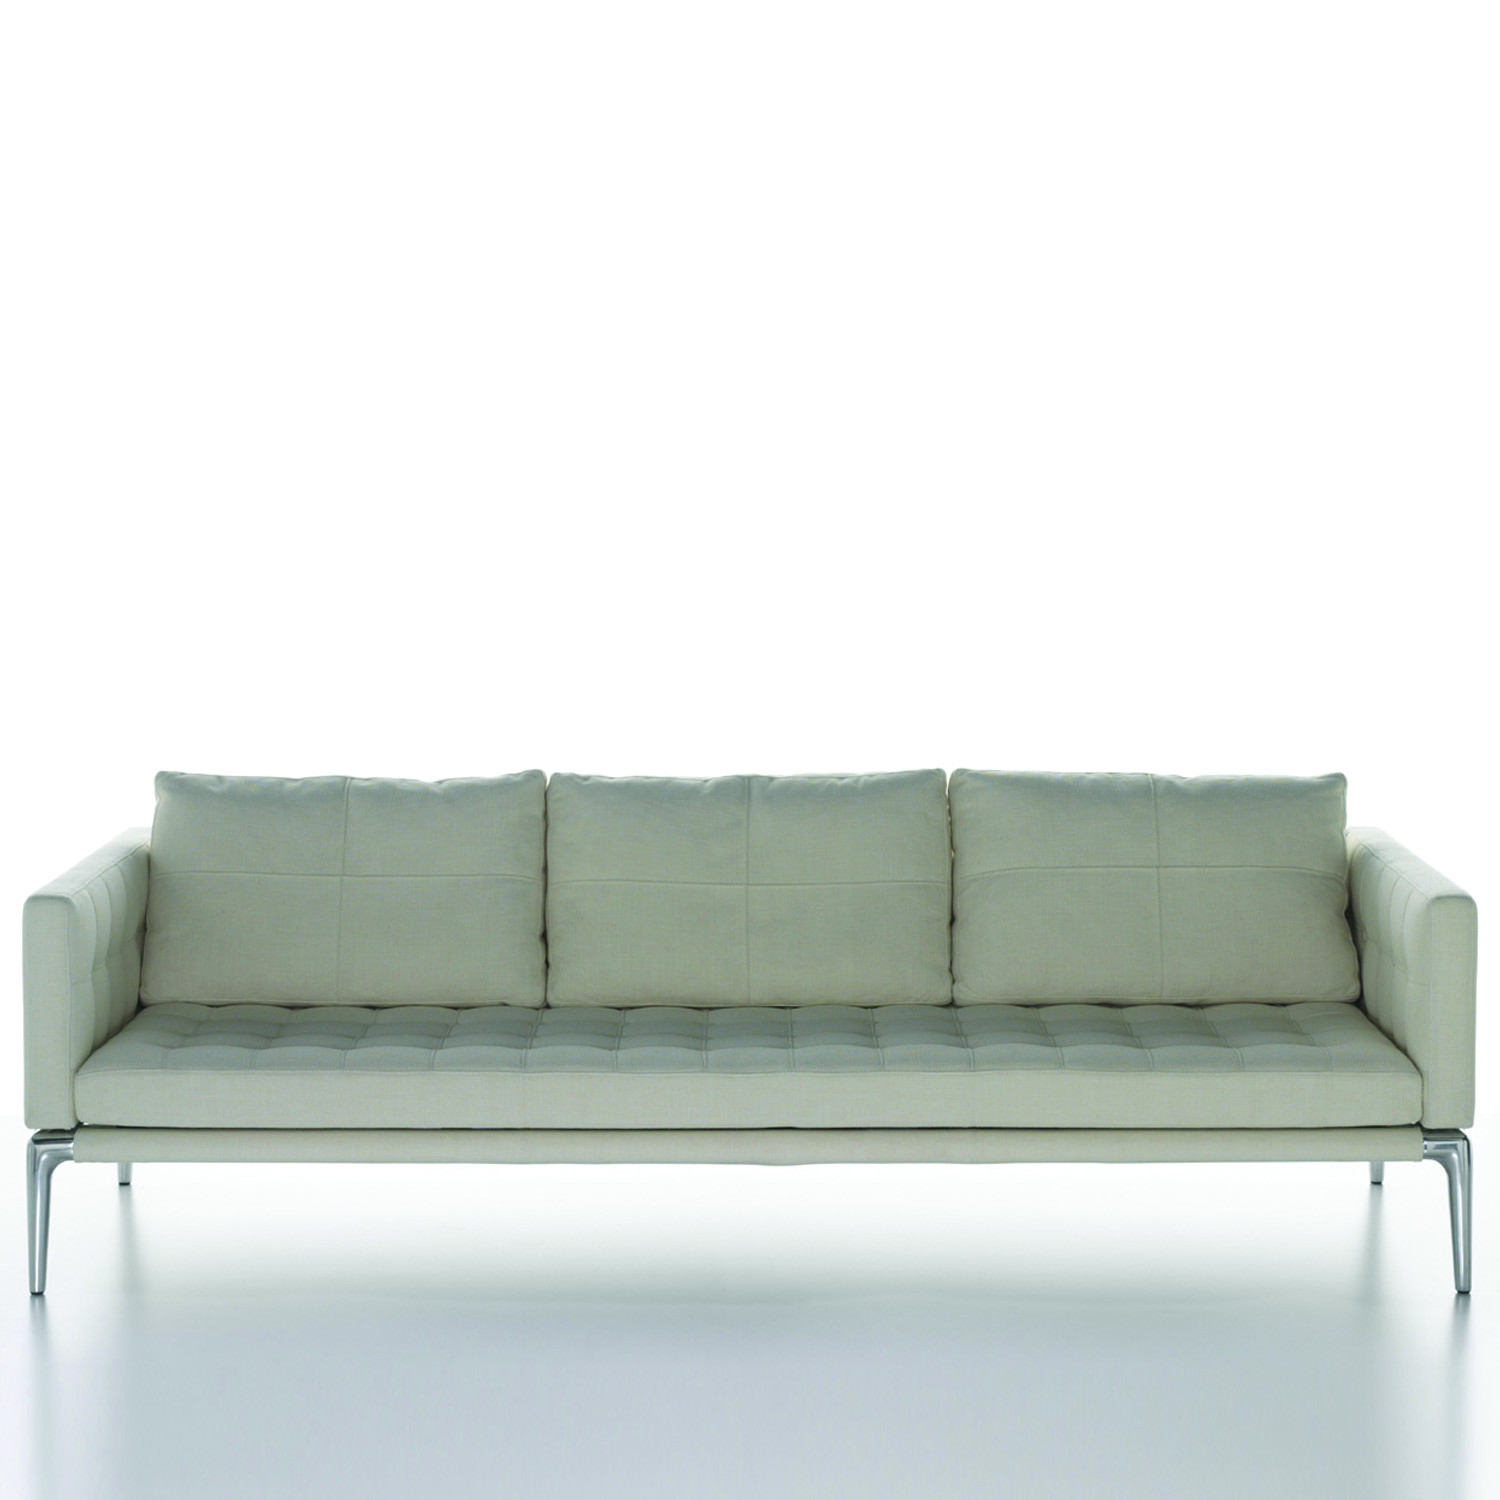 243 Volage Sofa Three Seater